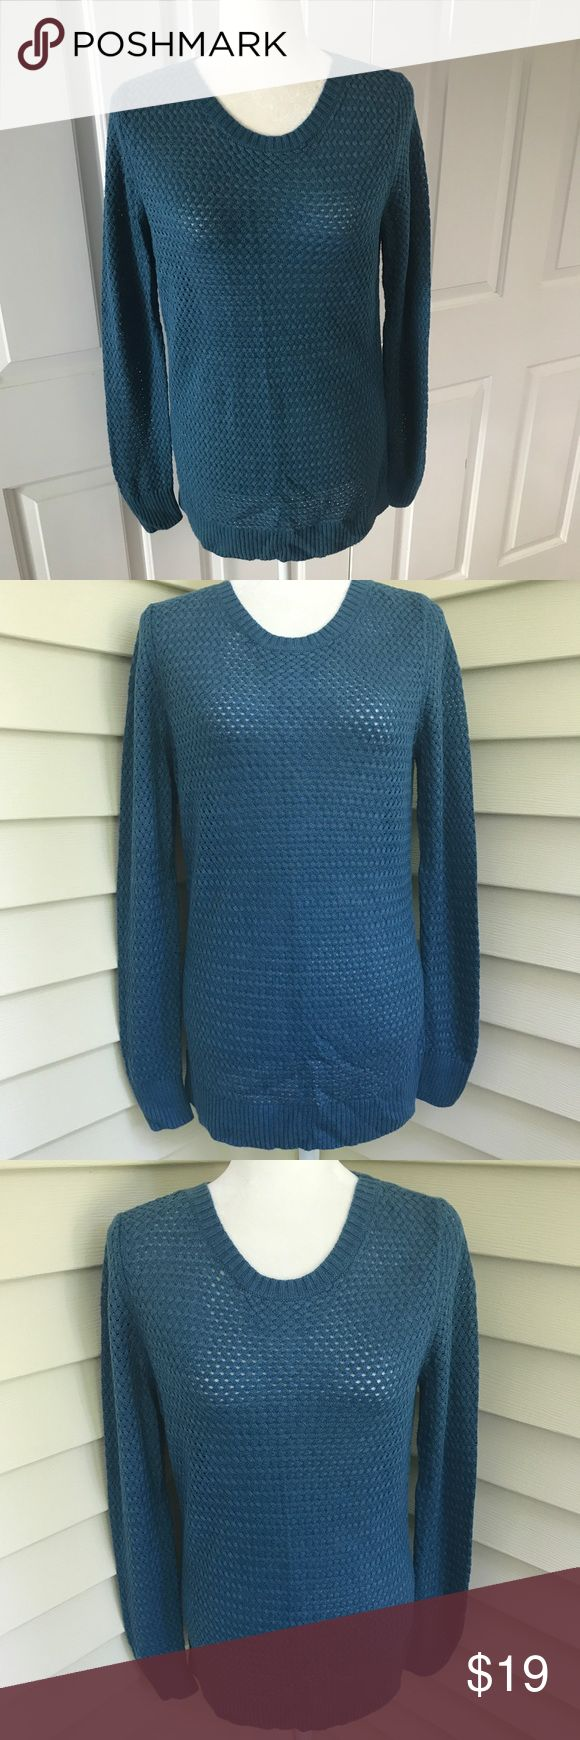 """Anne Taylor Loft lightweight sweater top Excellent condition. Material cotton/Rayon/nylon. Size medium. Pit to pit. 19"""" pit to hem 19"""". Front is a hole Knit bottom of hem has slots on both sides for stylish look. Back is a thin Knit. Great for career or a casual day.  The color is a bluish color bin 12 Ann Taylor Sweaters"""